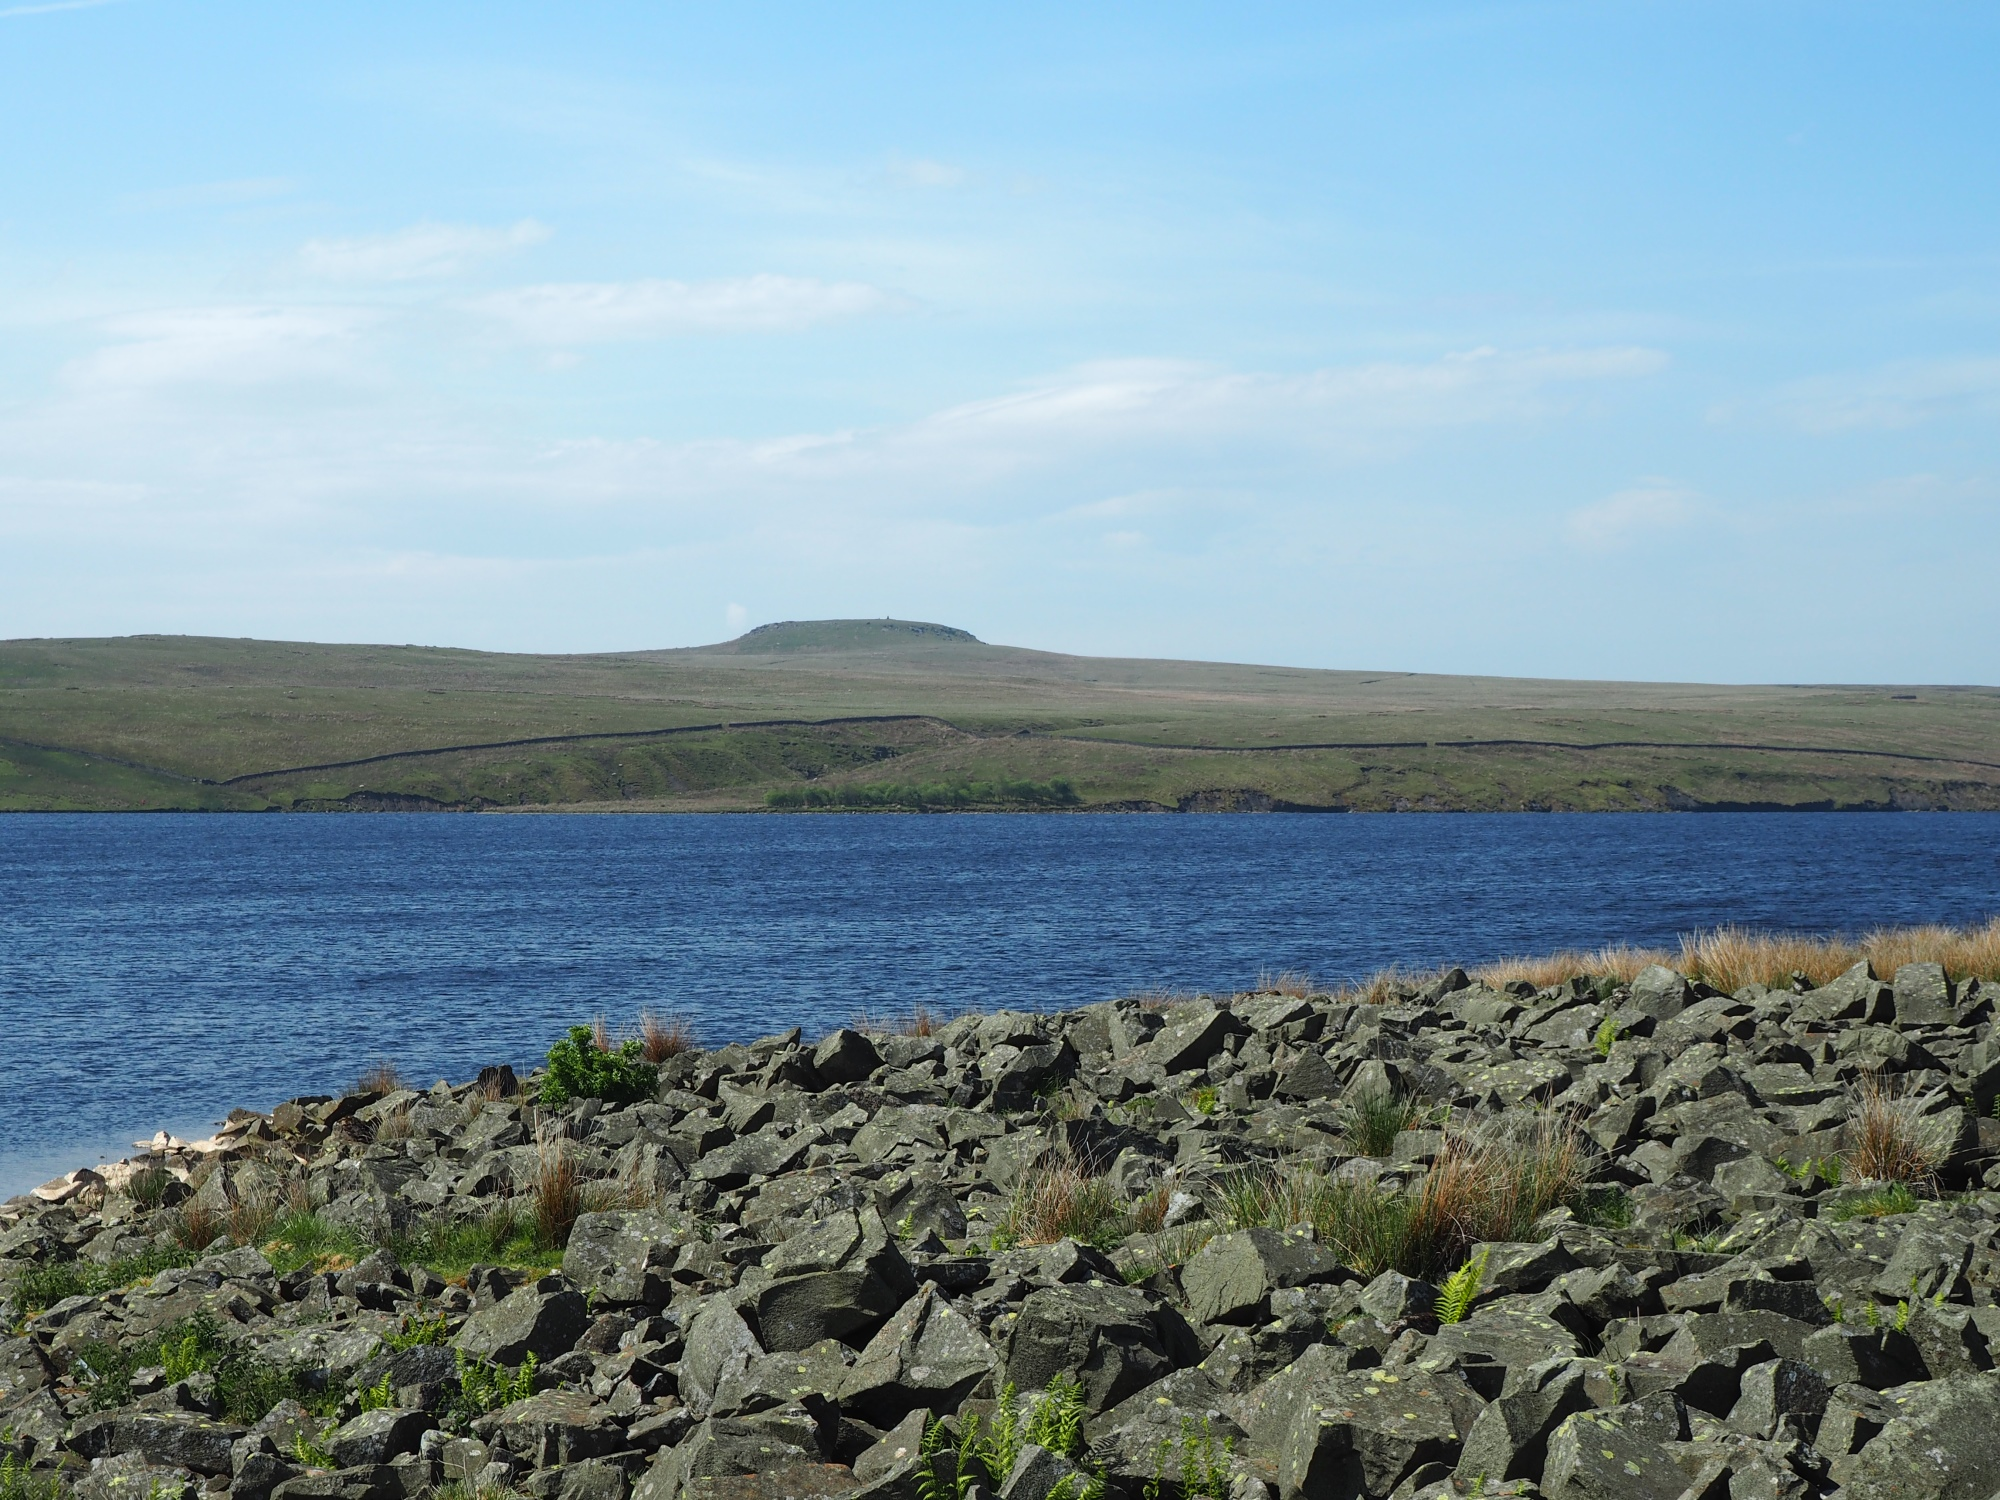 Shacklesborough and Balderhead Reservoir